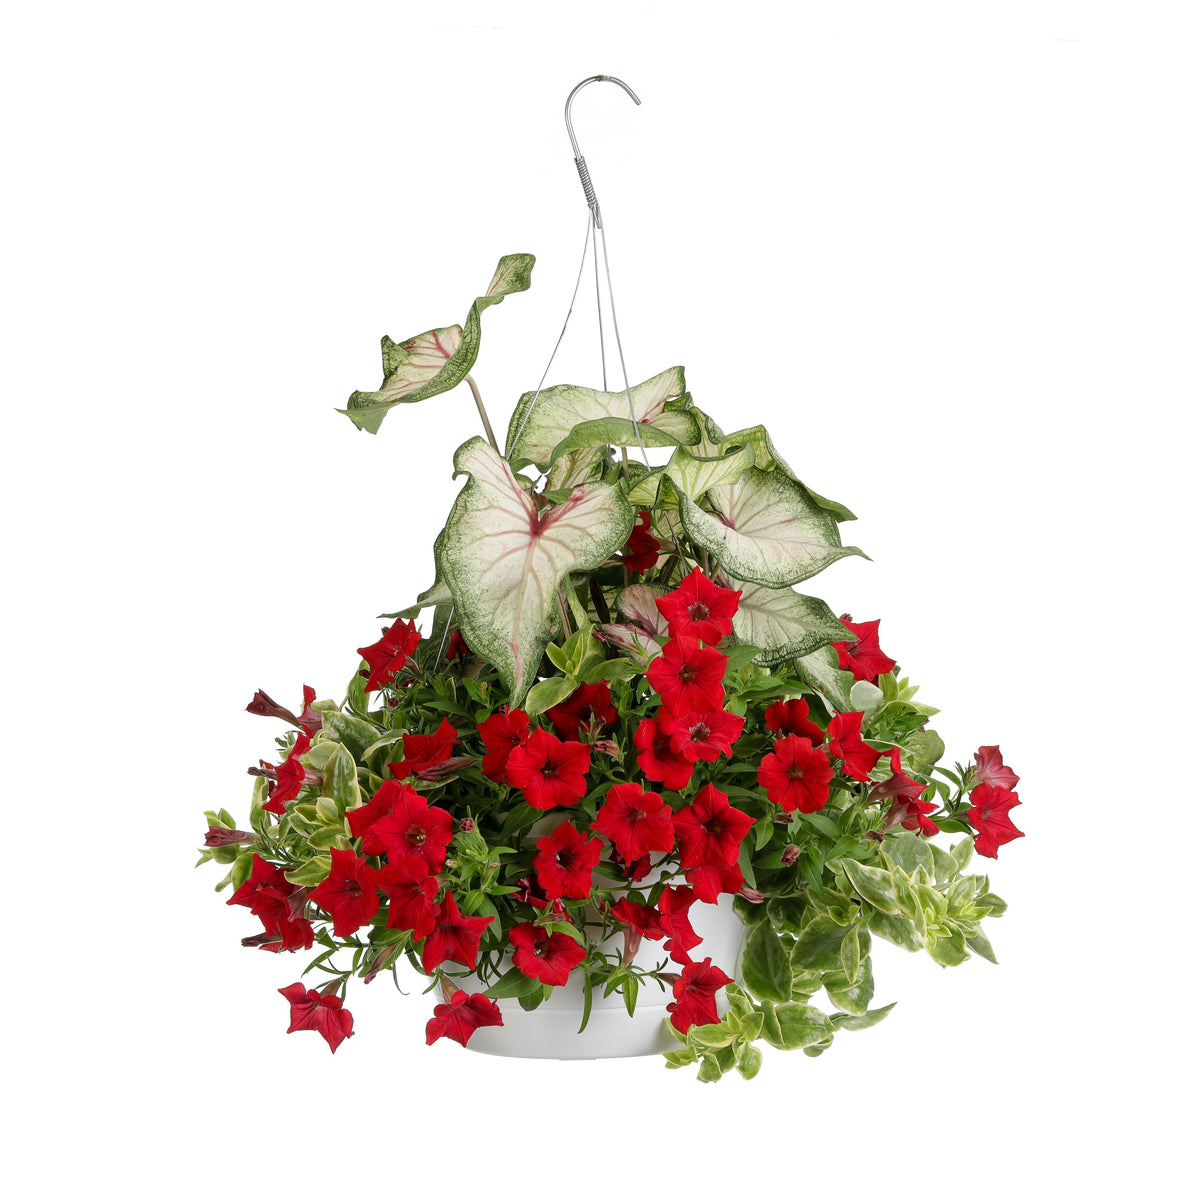 Proven Winners® Patio Plants|Embolden Combination Hanging Basket 1